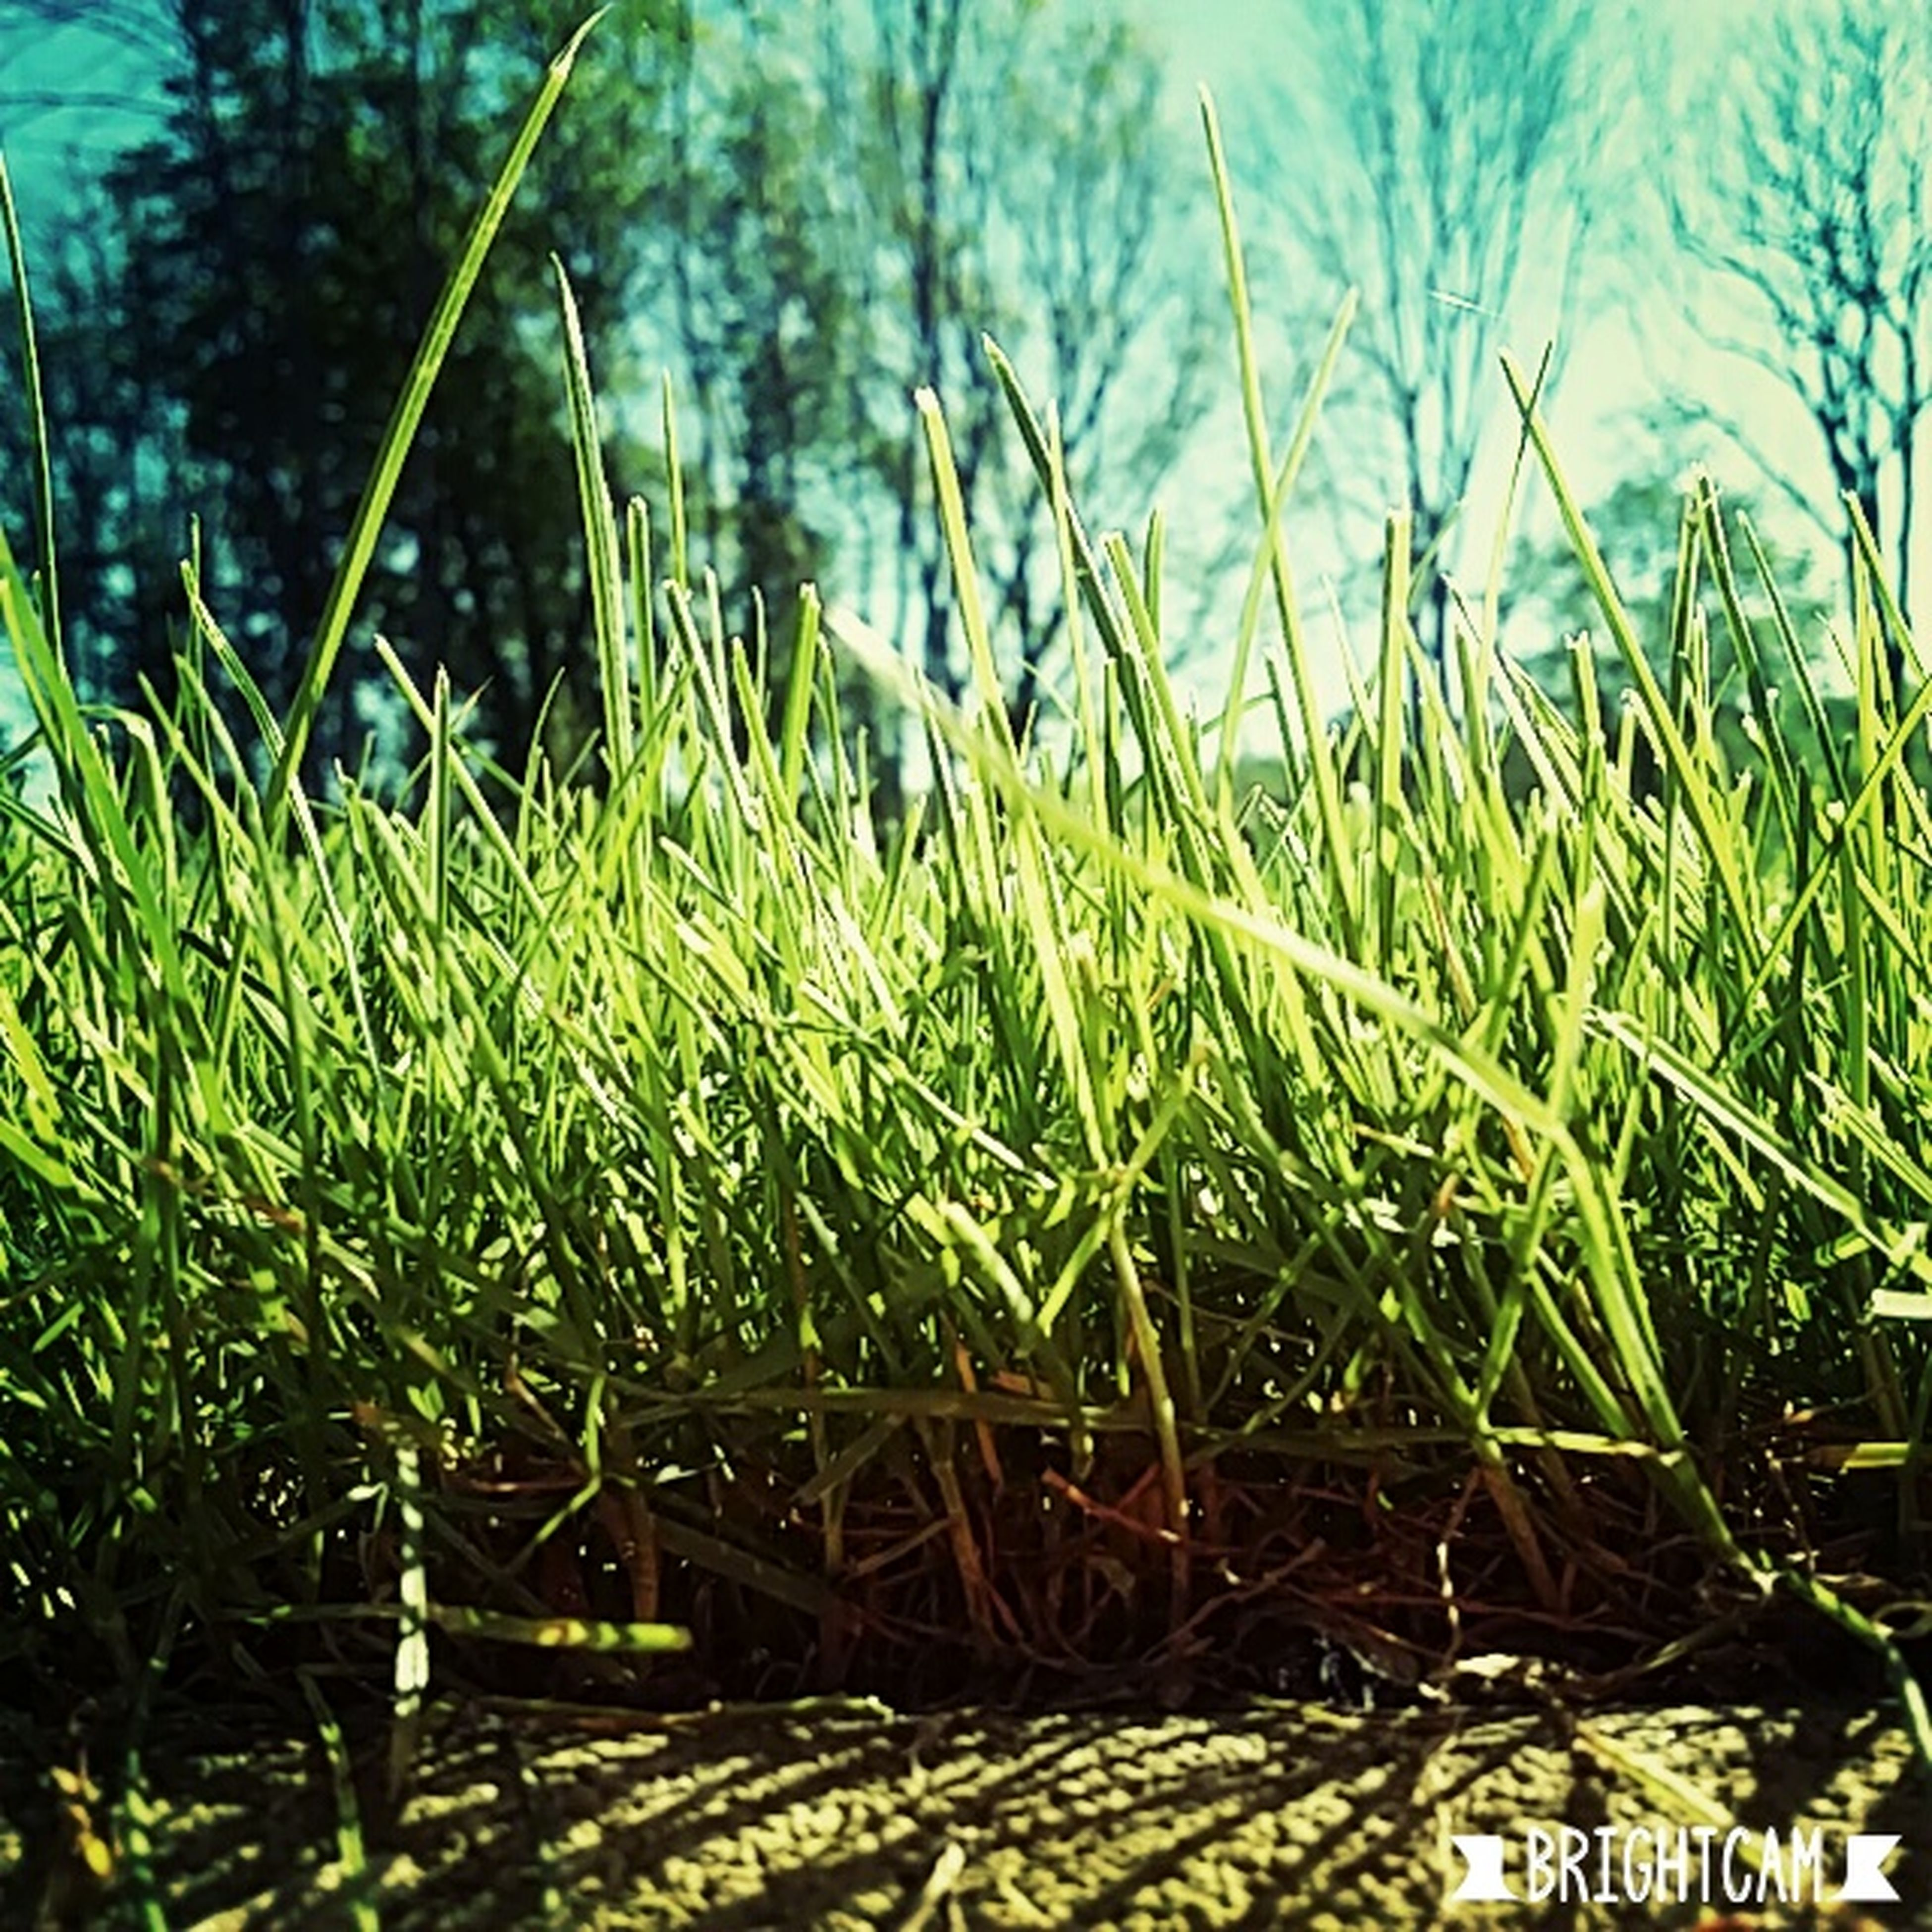 grass, growth, day, nature, no people, outdoors, sunlight, green color, tranquility, beauty in nature, water, close-up